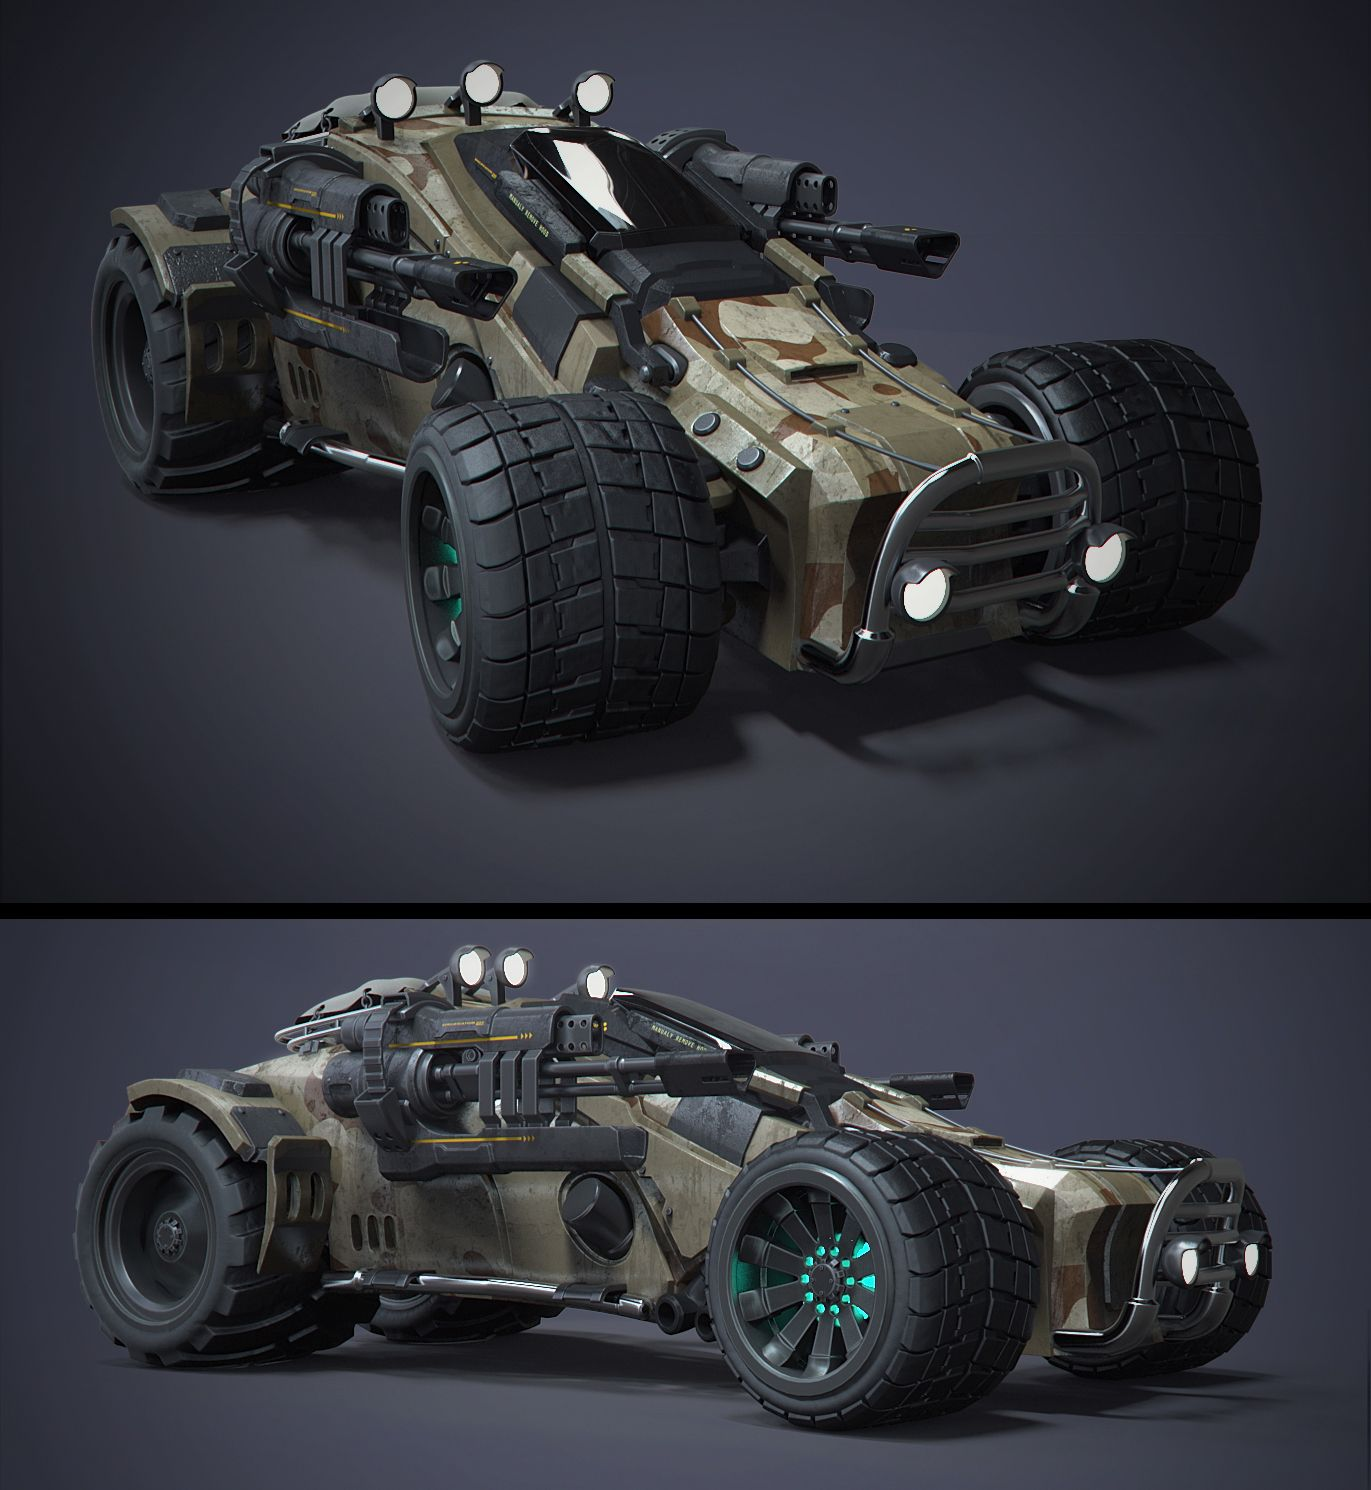 Jeep01 By Infected_mind 1371px X 1490px